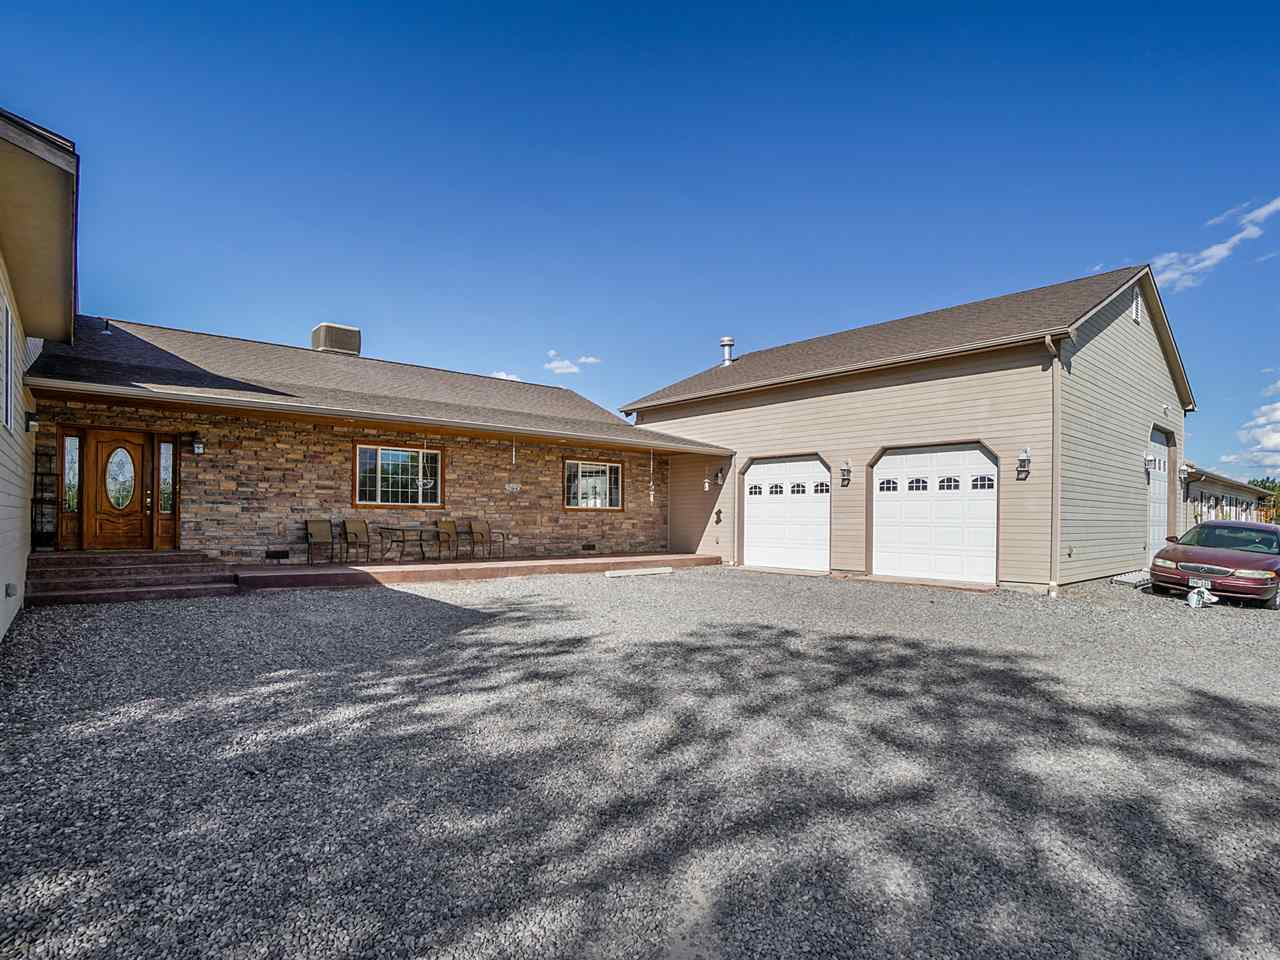 668 31 Road, Grand Junction, CO 81504